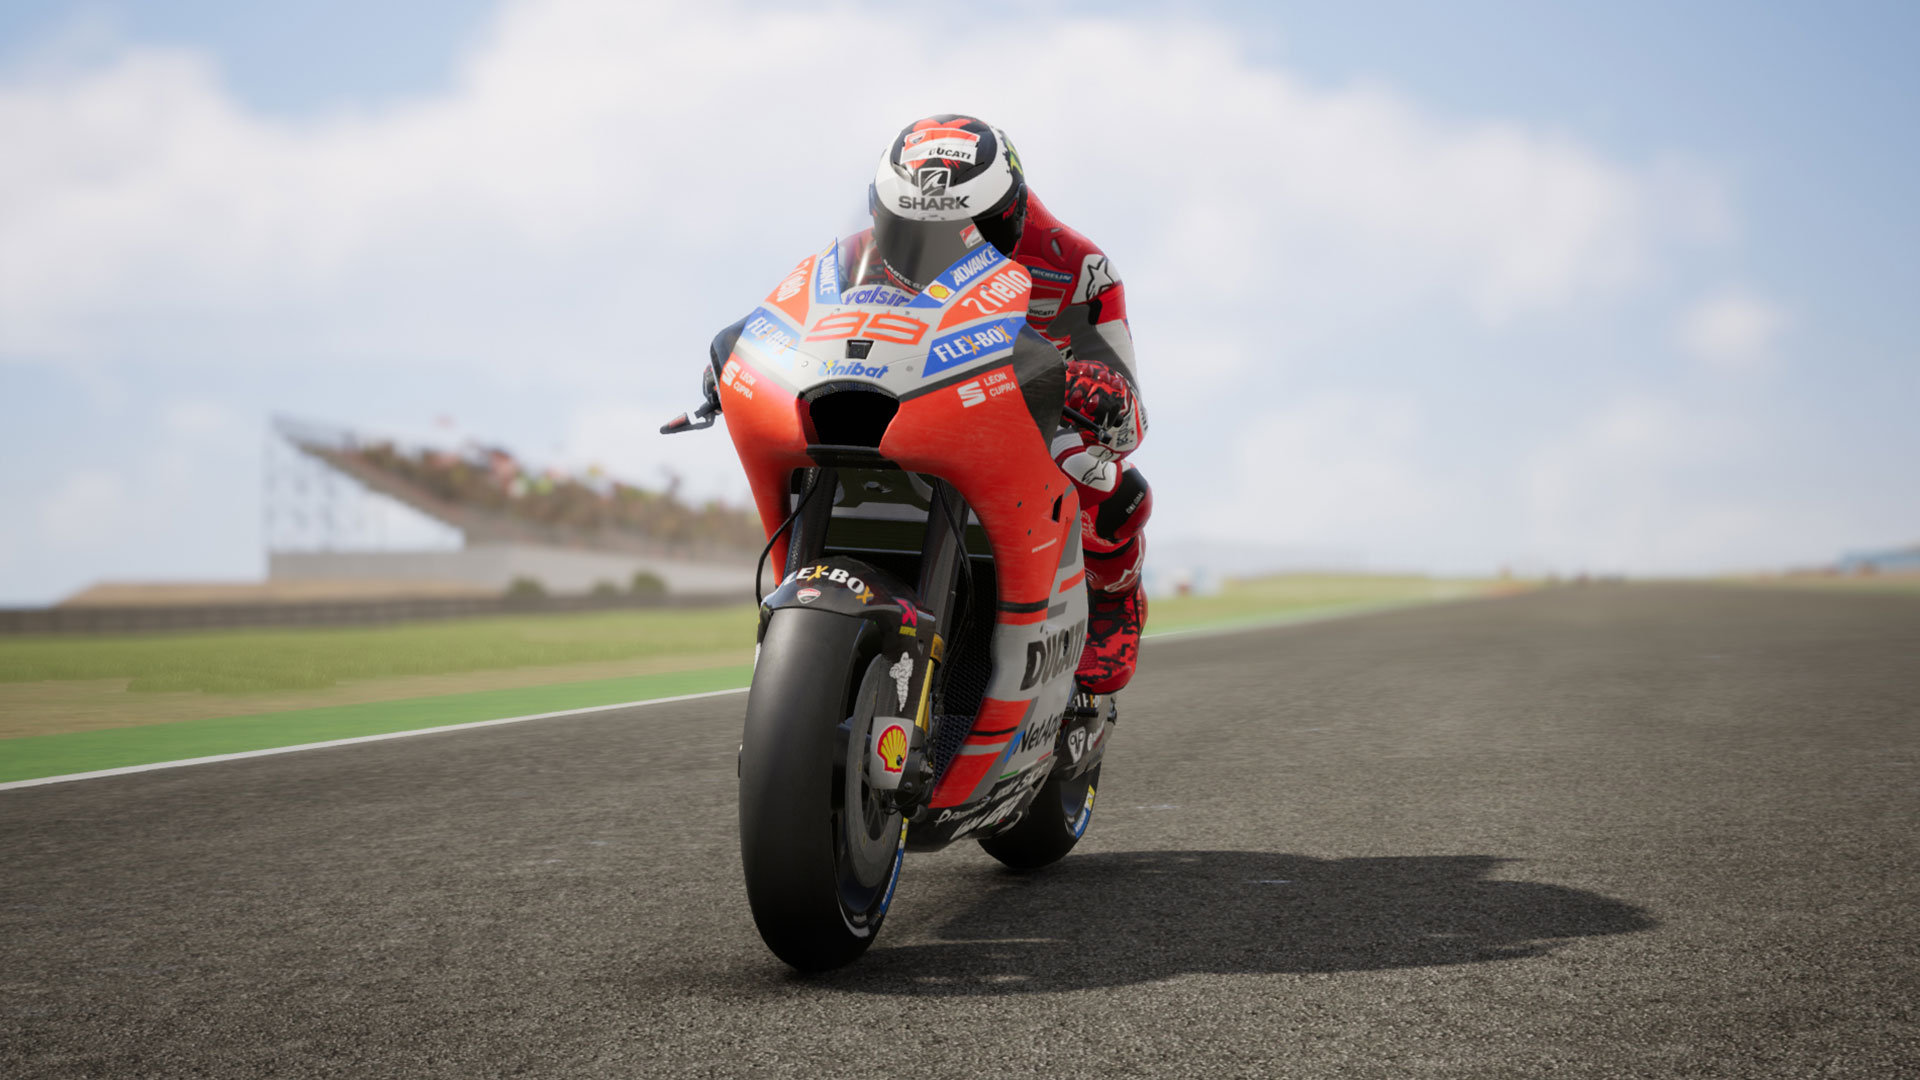 motogp18-screenshots-06-ps4-us-07june201